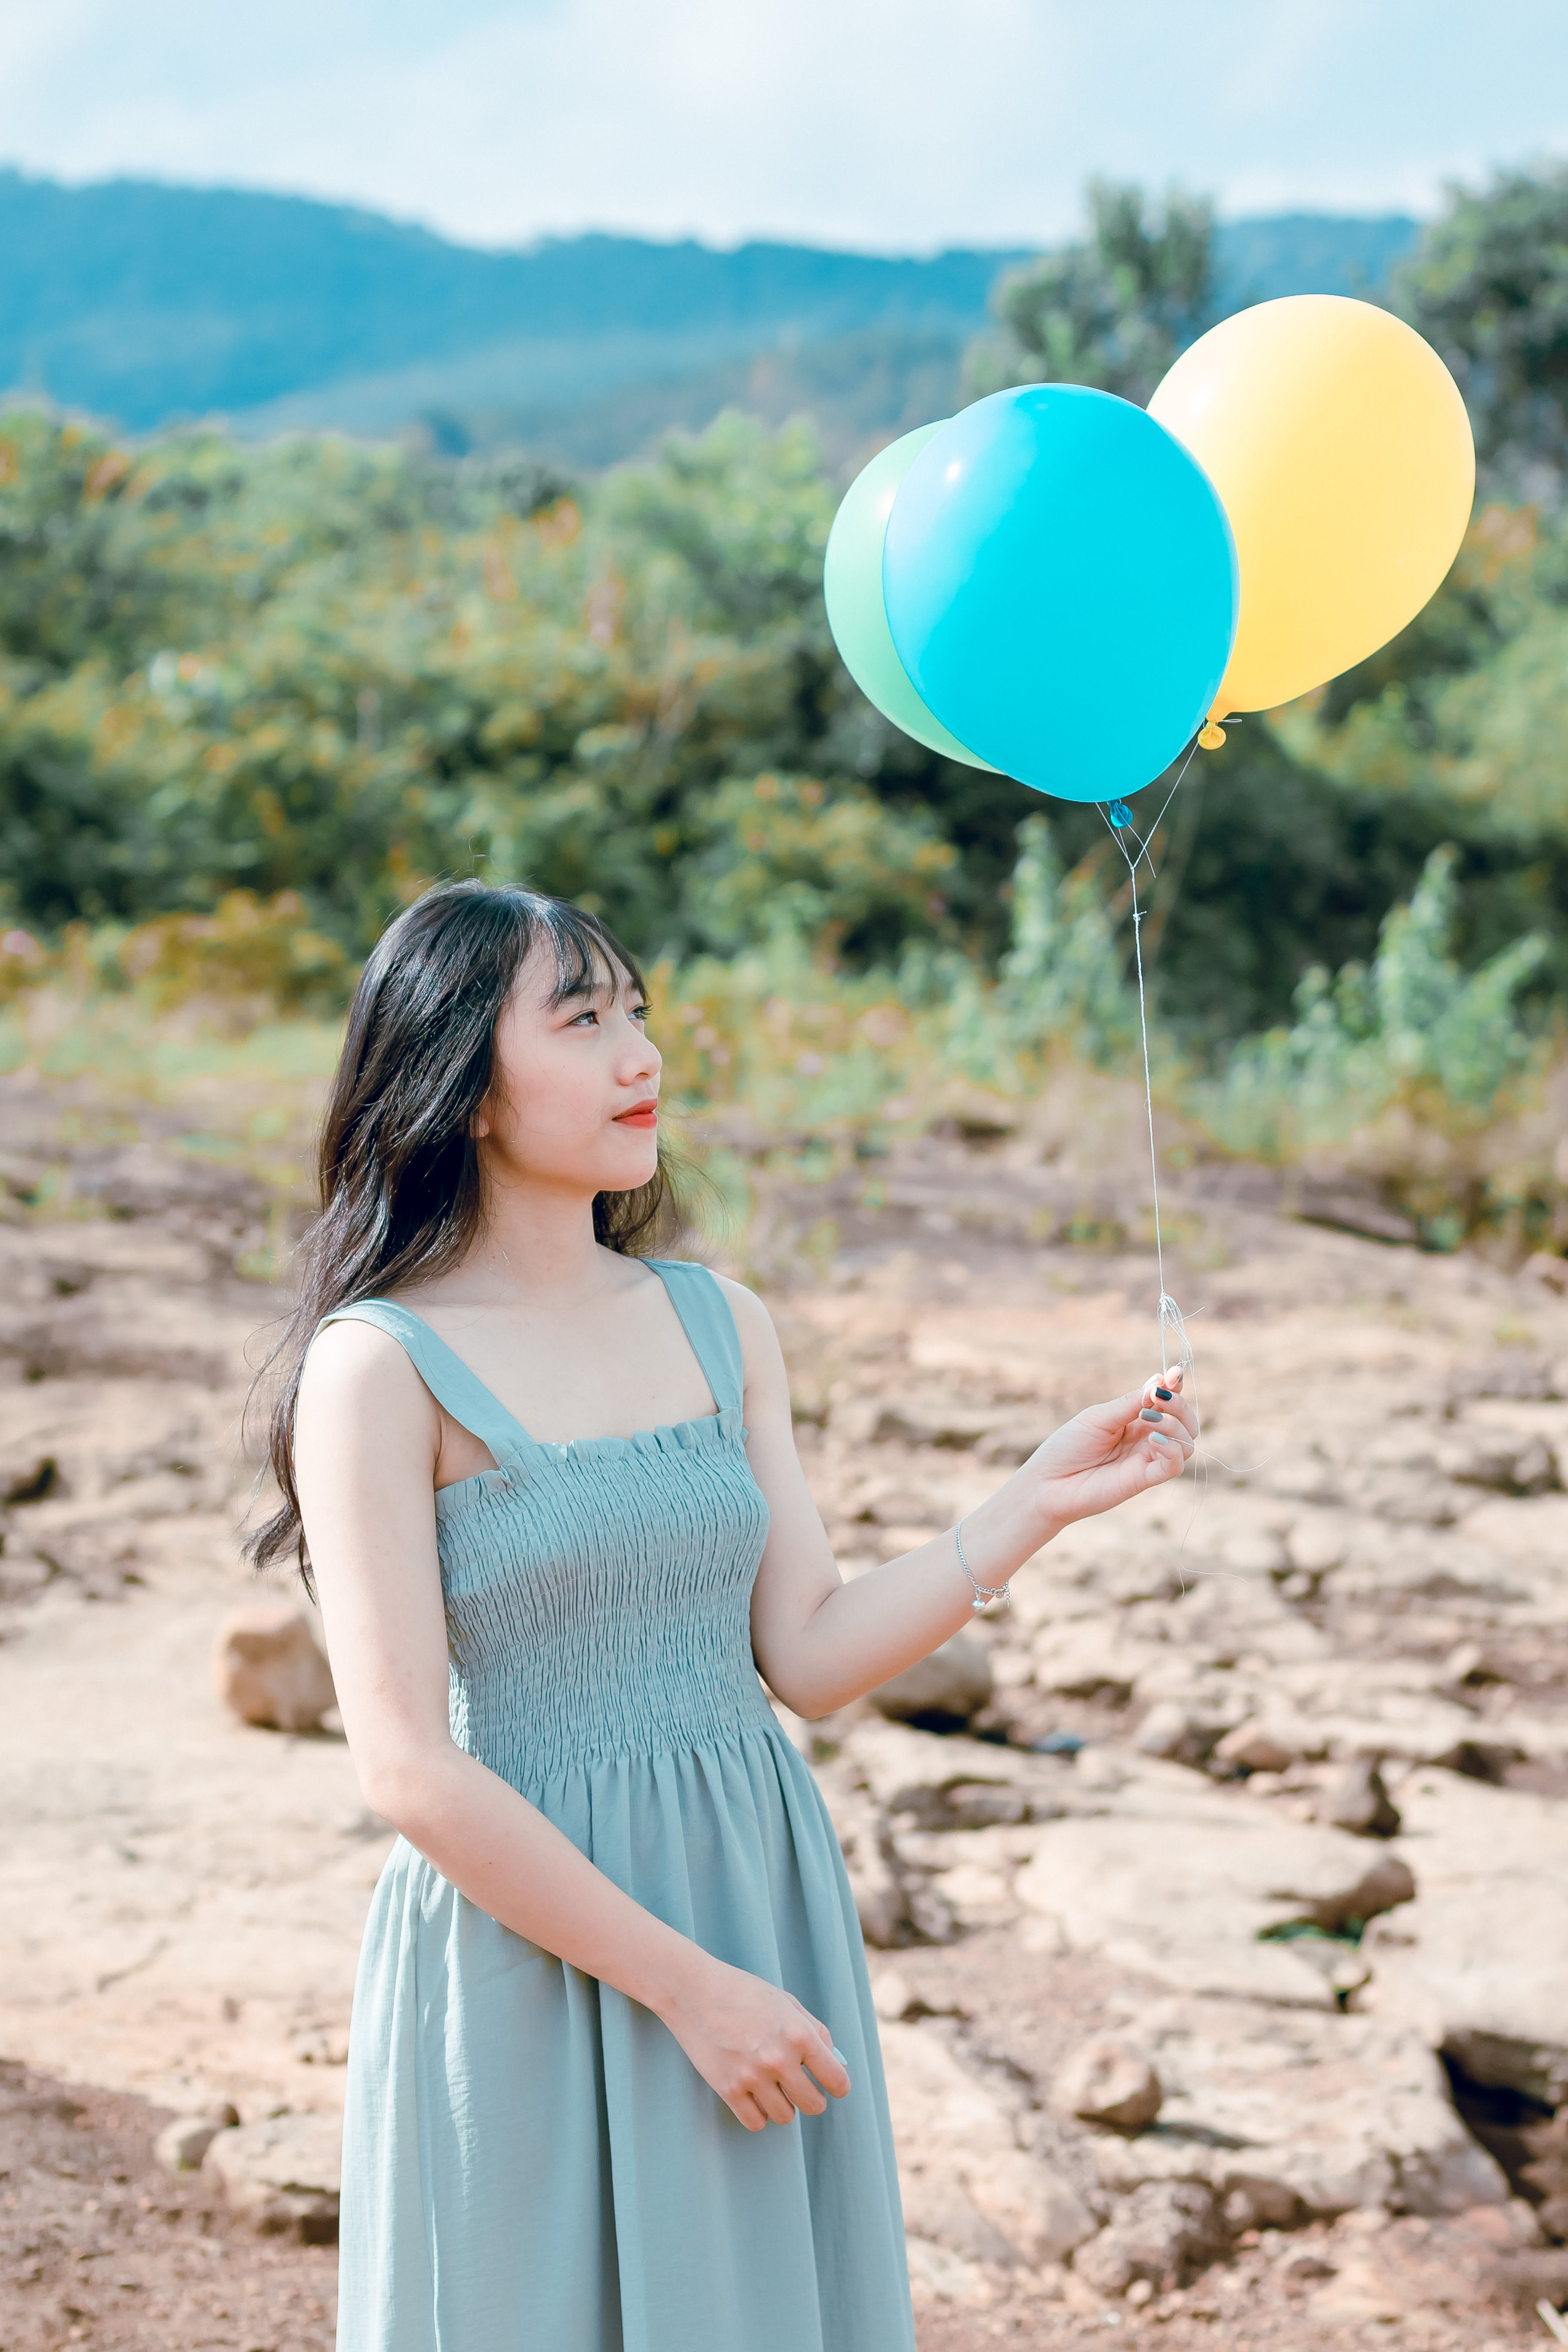 Woman Wearing Blue Dress Holding Balloons